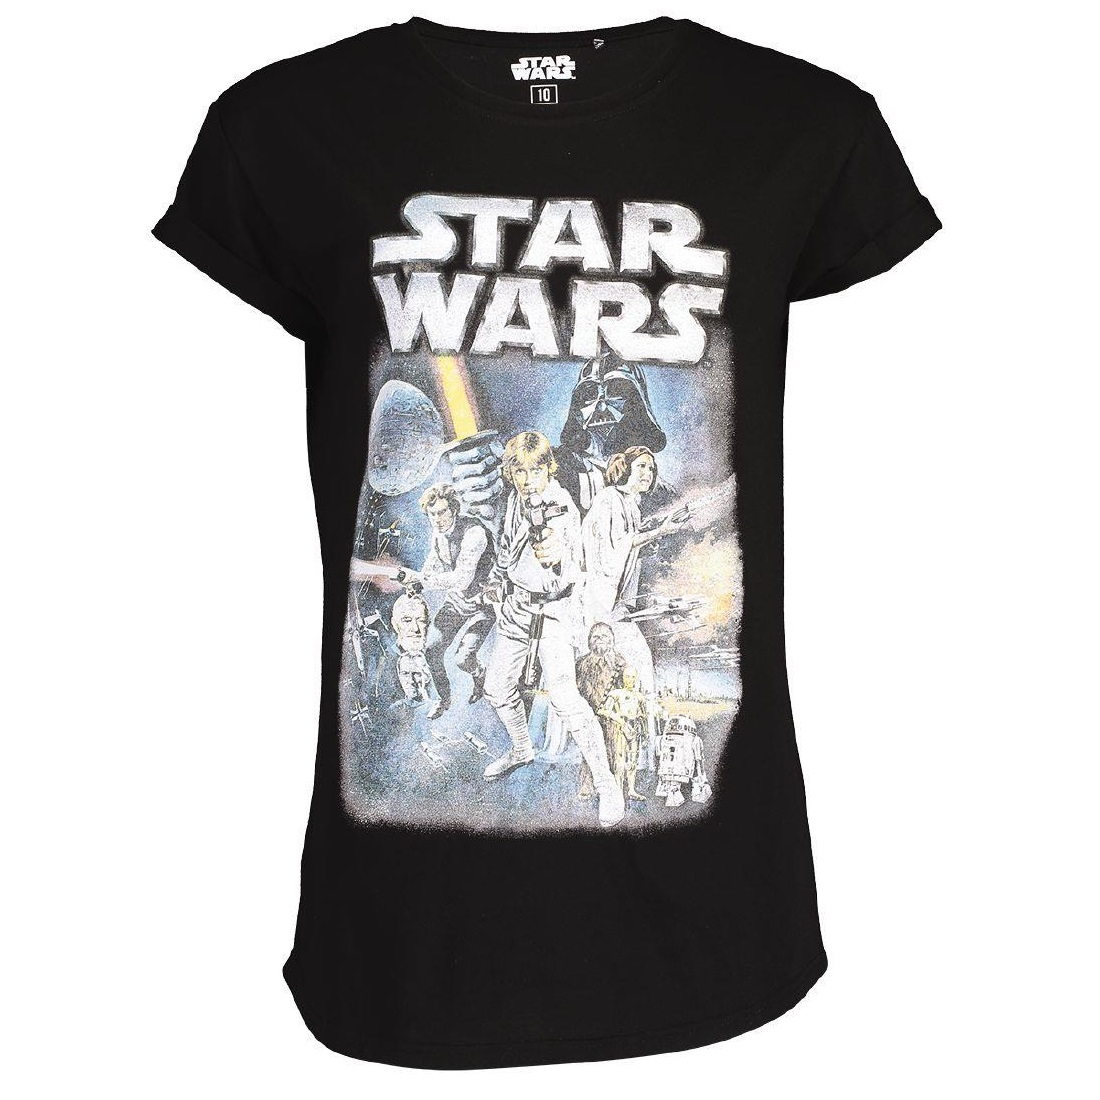 Women's Star Wars Poster Artwork T-Shirt at The Warehouse